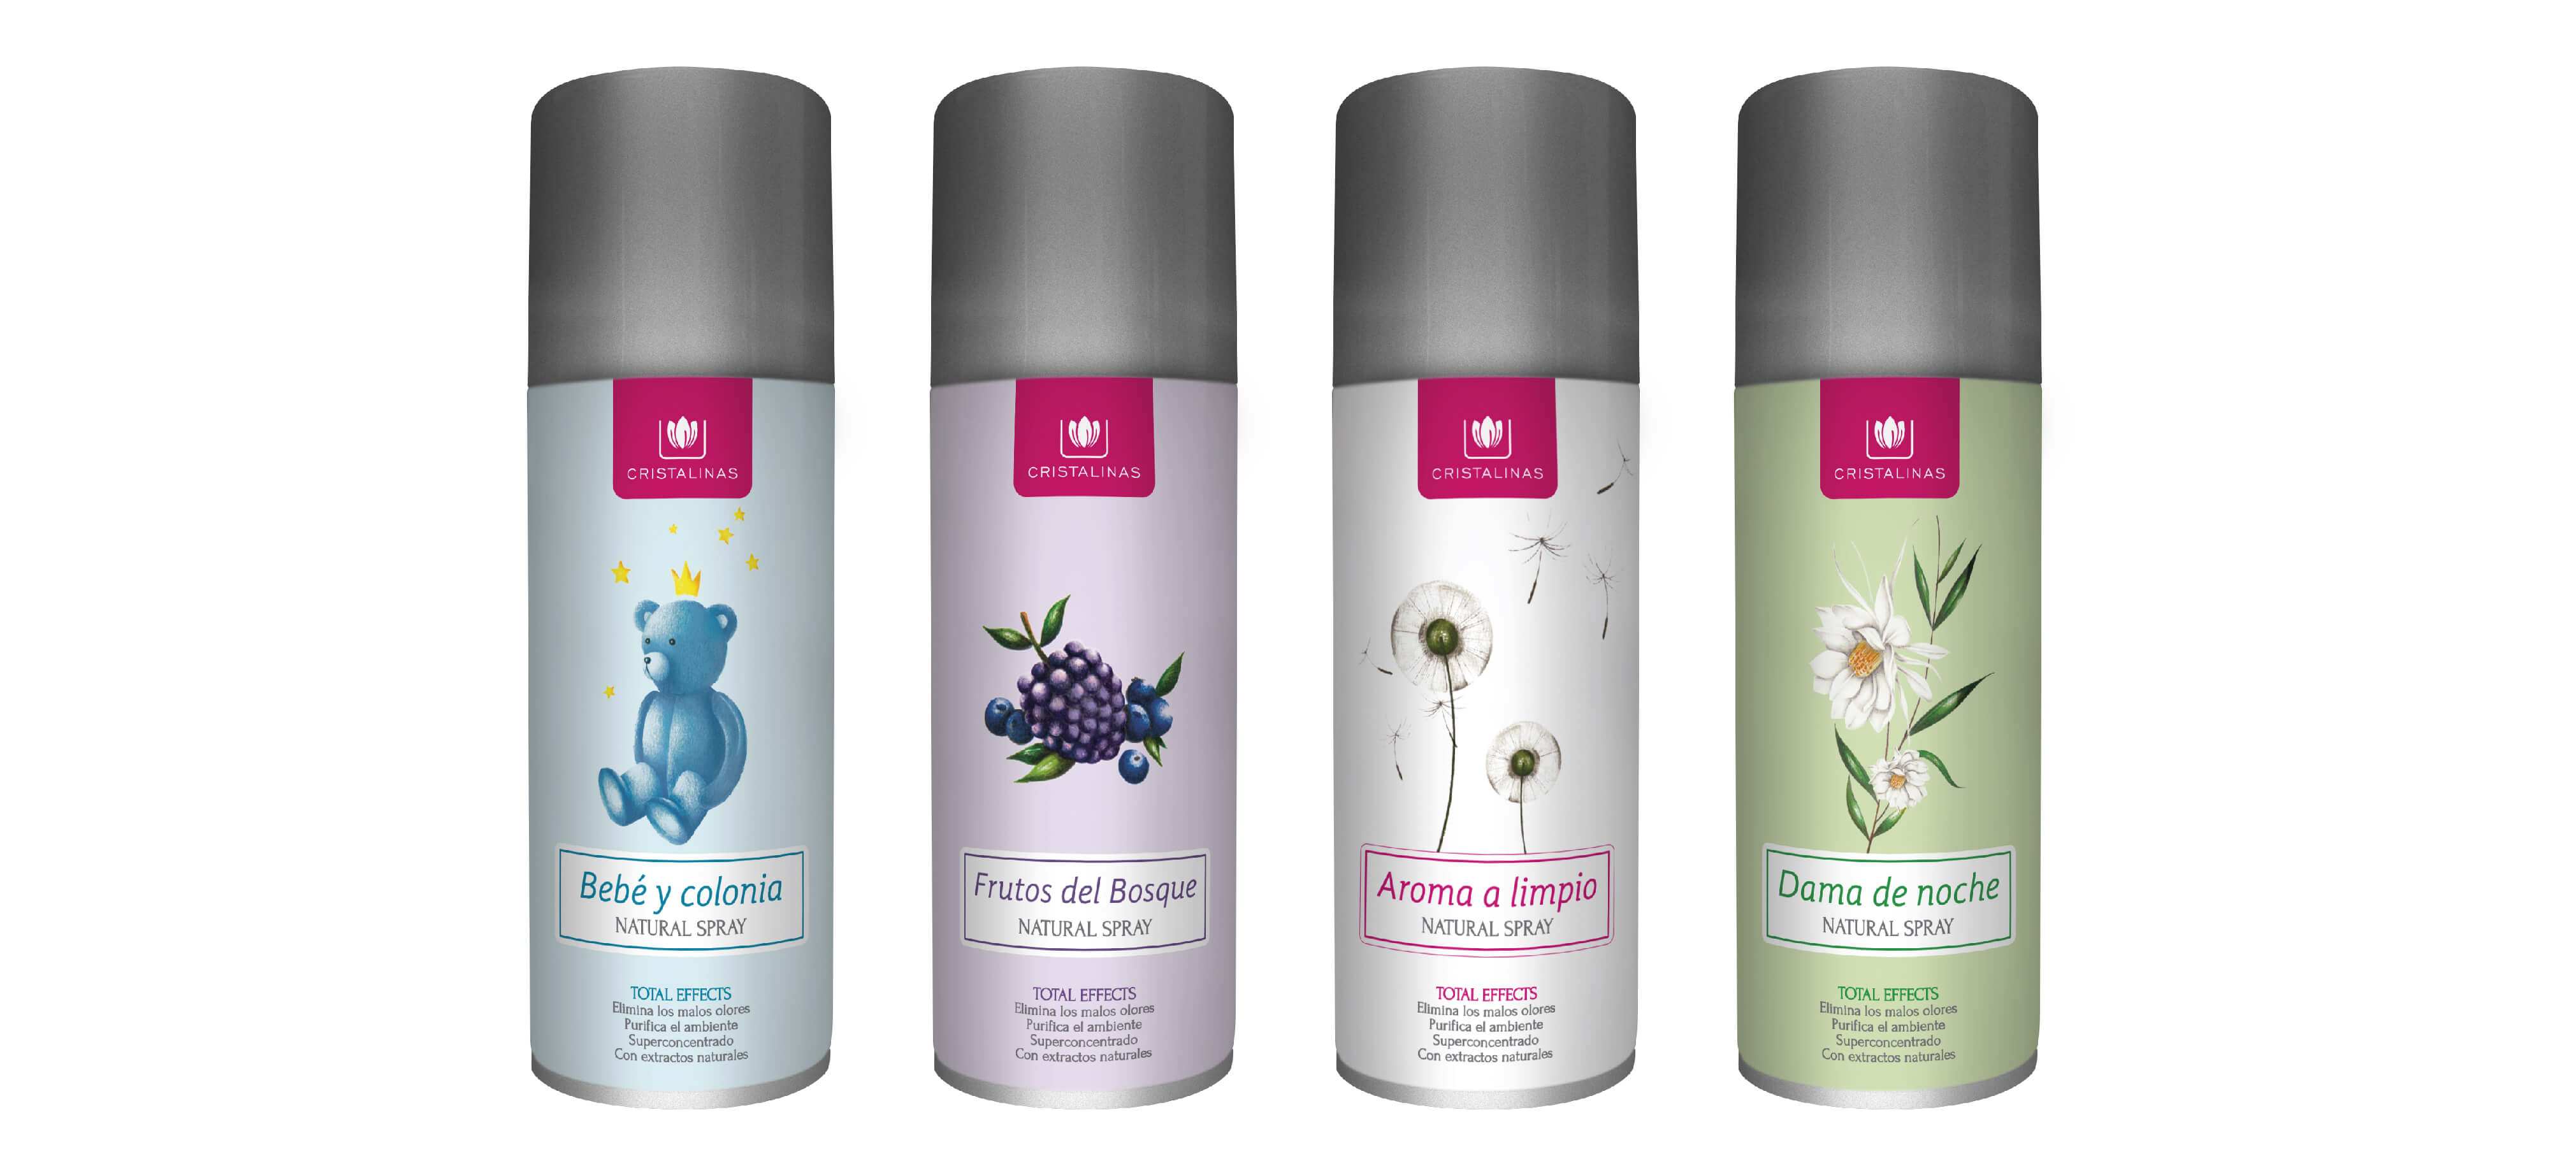 Compra tu Total Effects Natural Spray en tu aroma preferido en Cristalinas